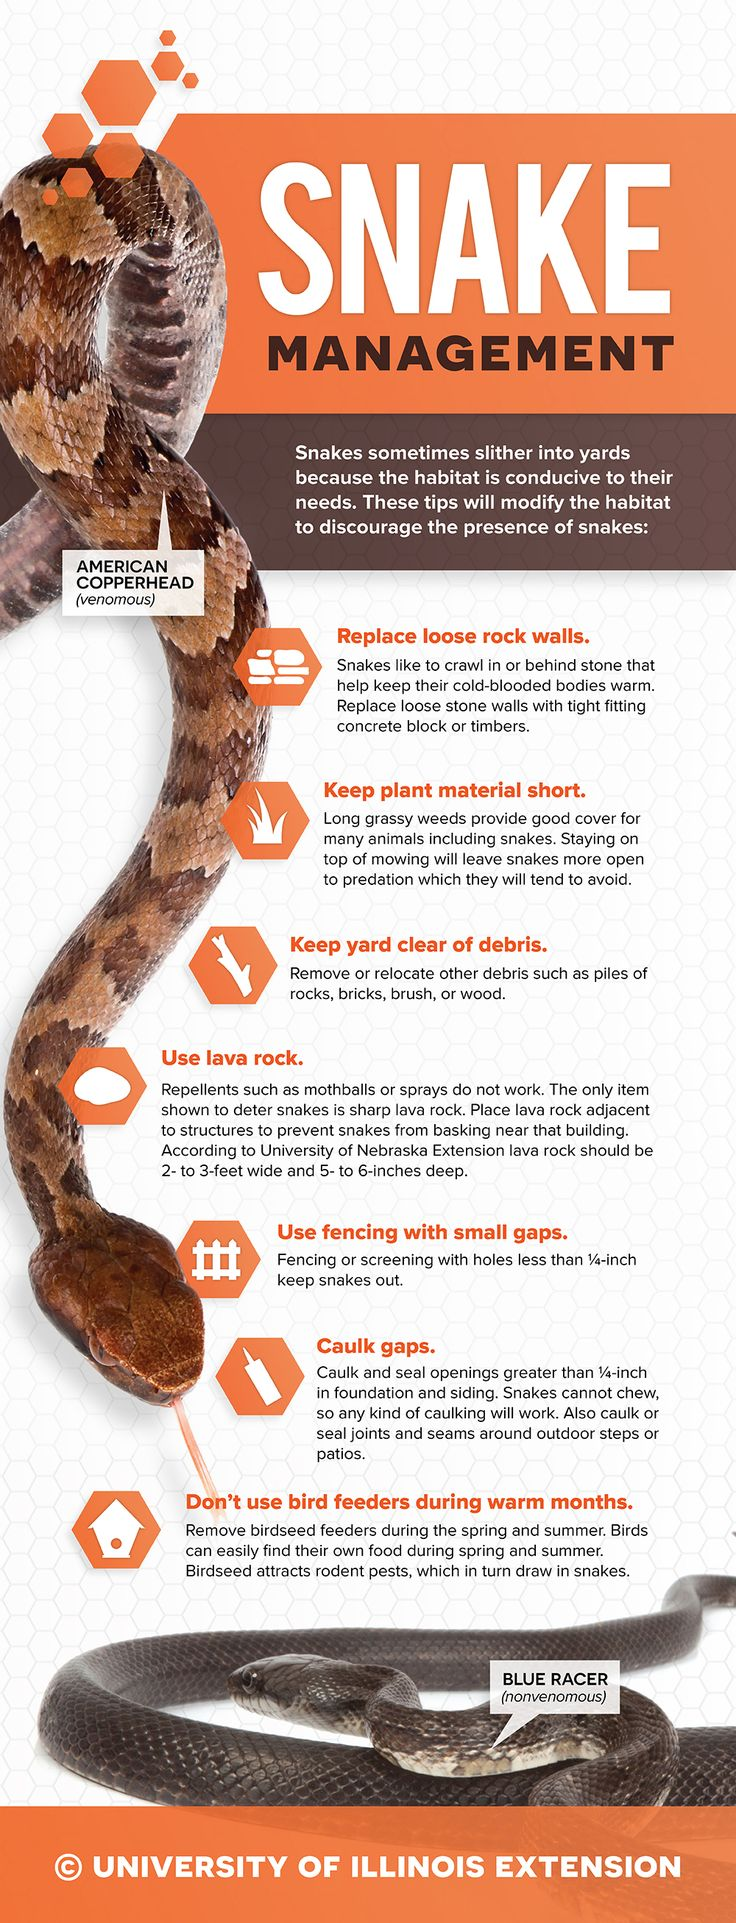 Snake Management Tips How To Keep Snakes Out Of Your